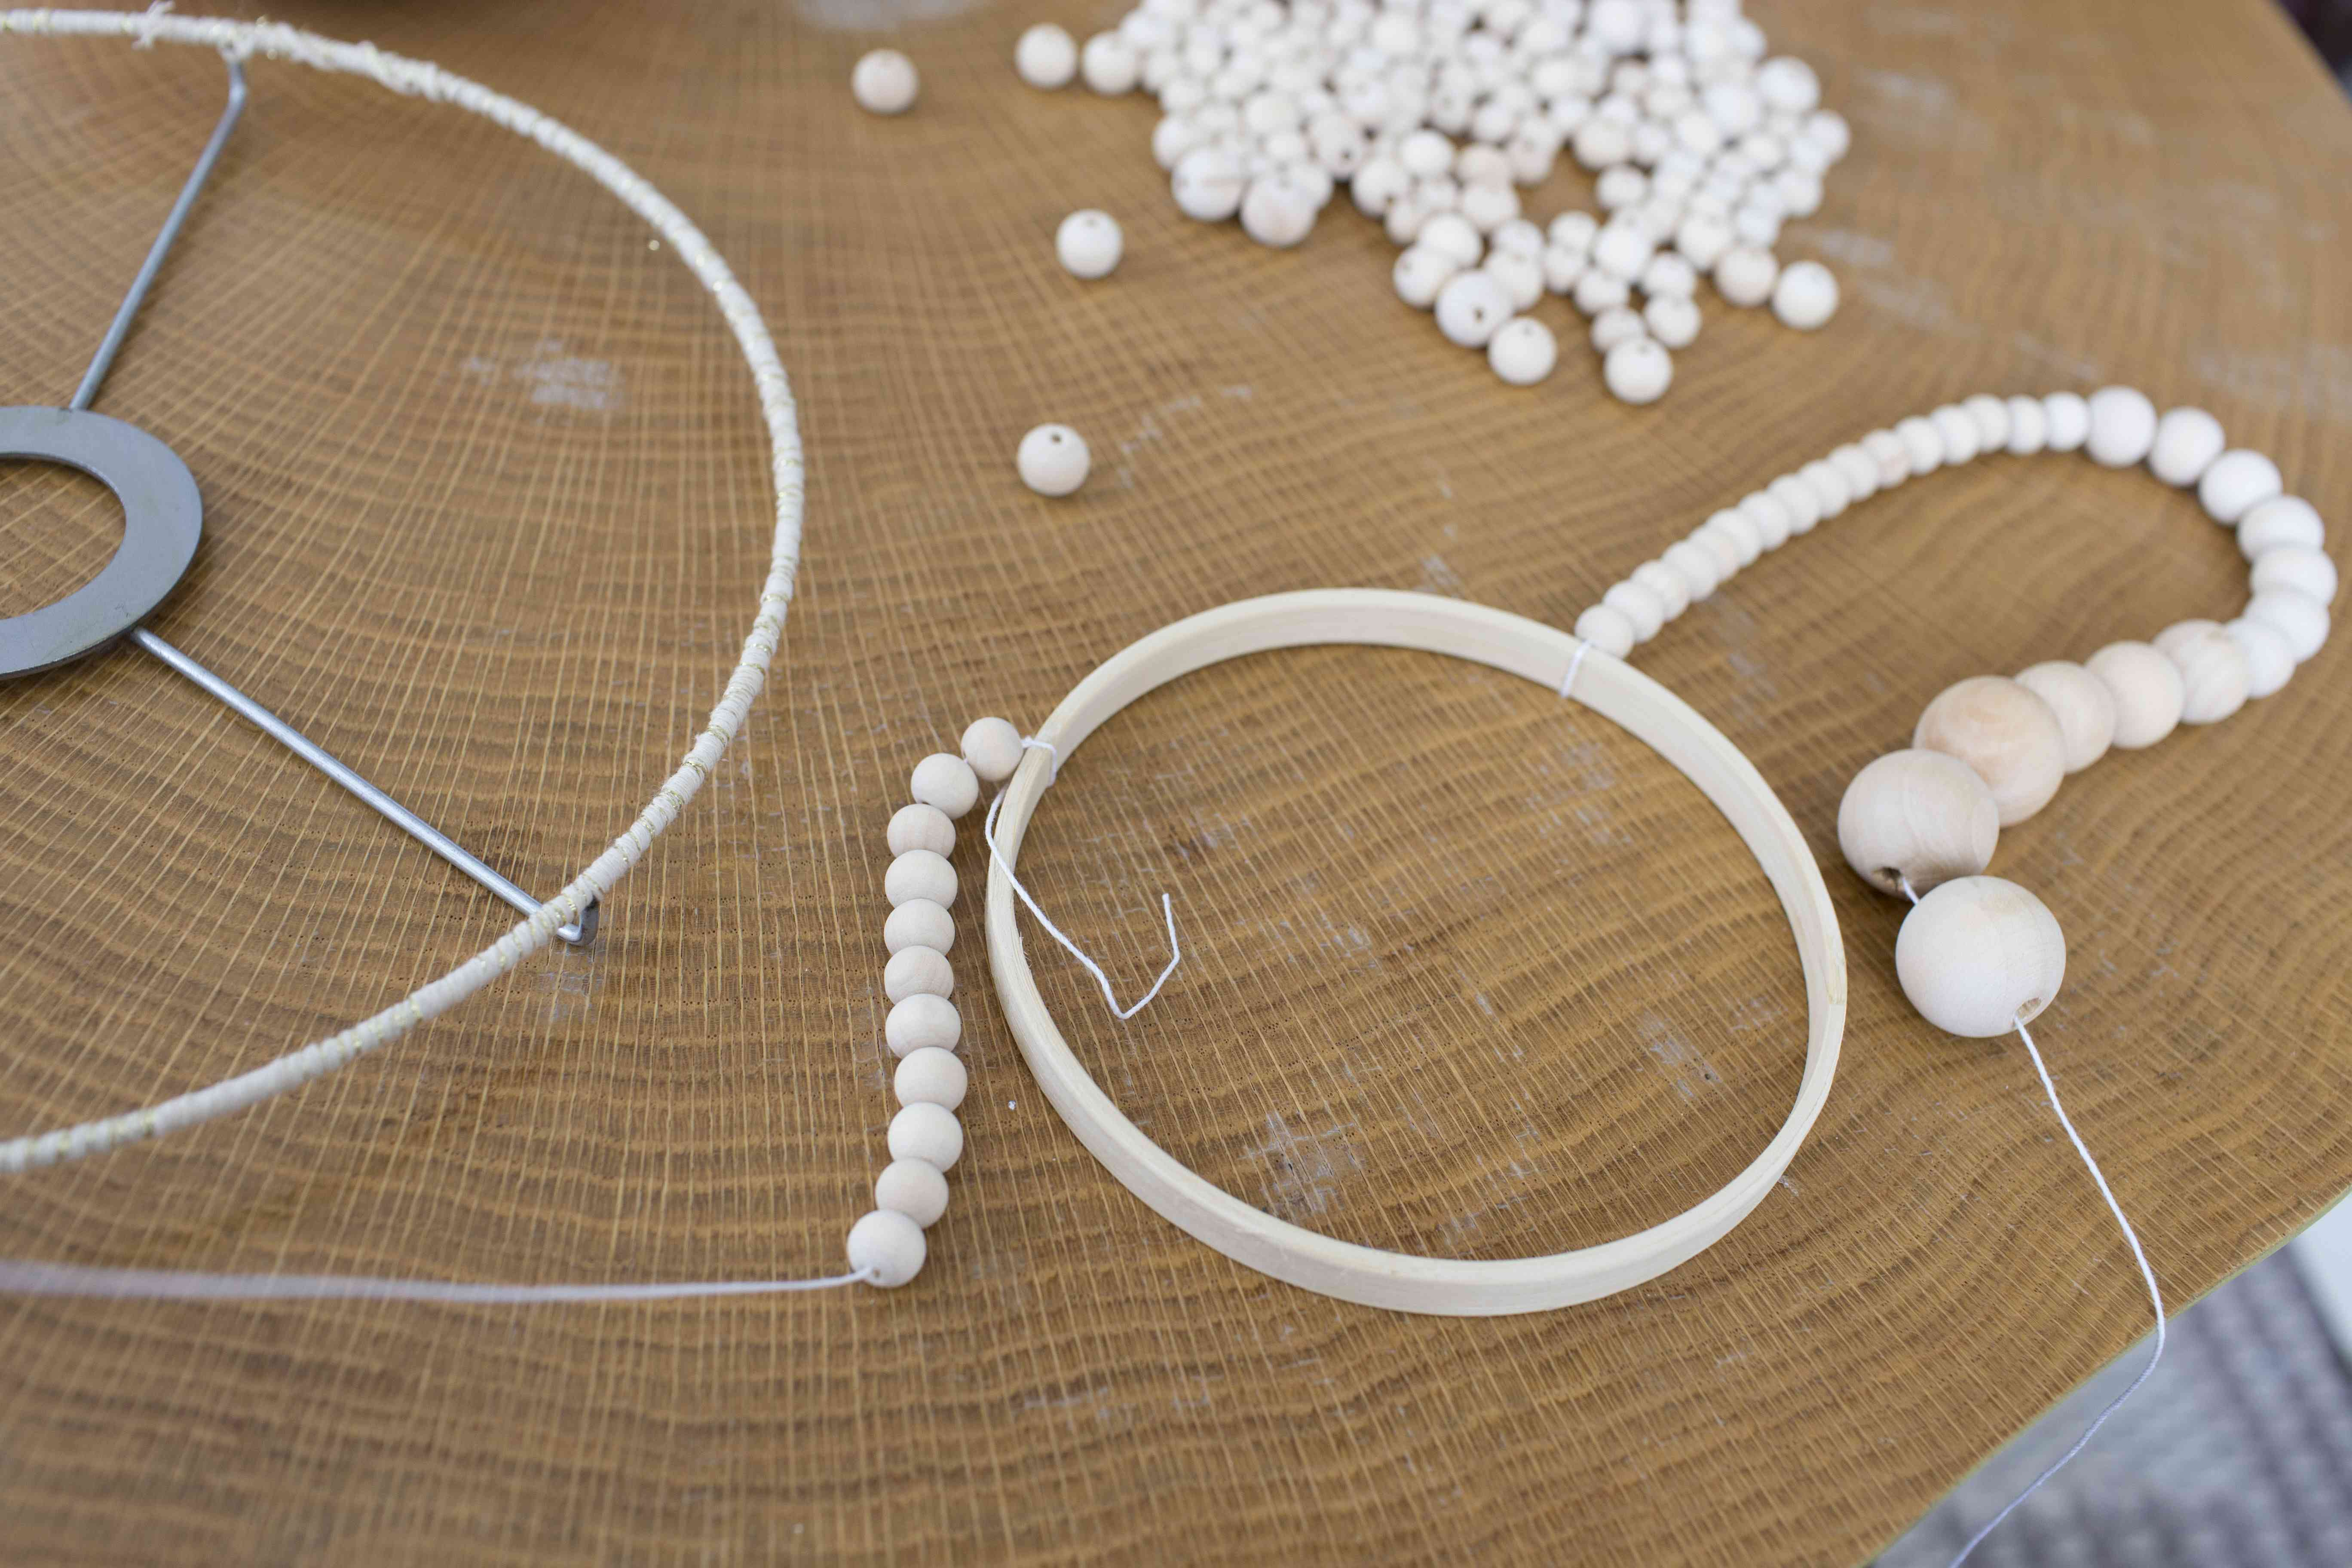 Stringing on the woodent beads.